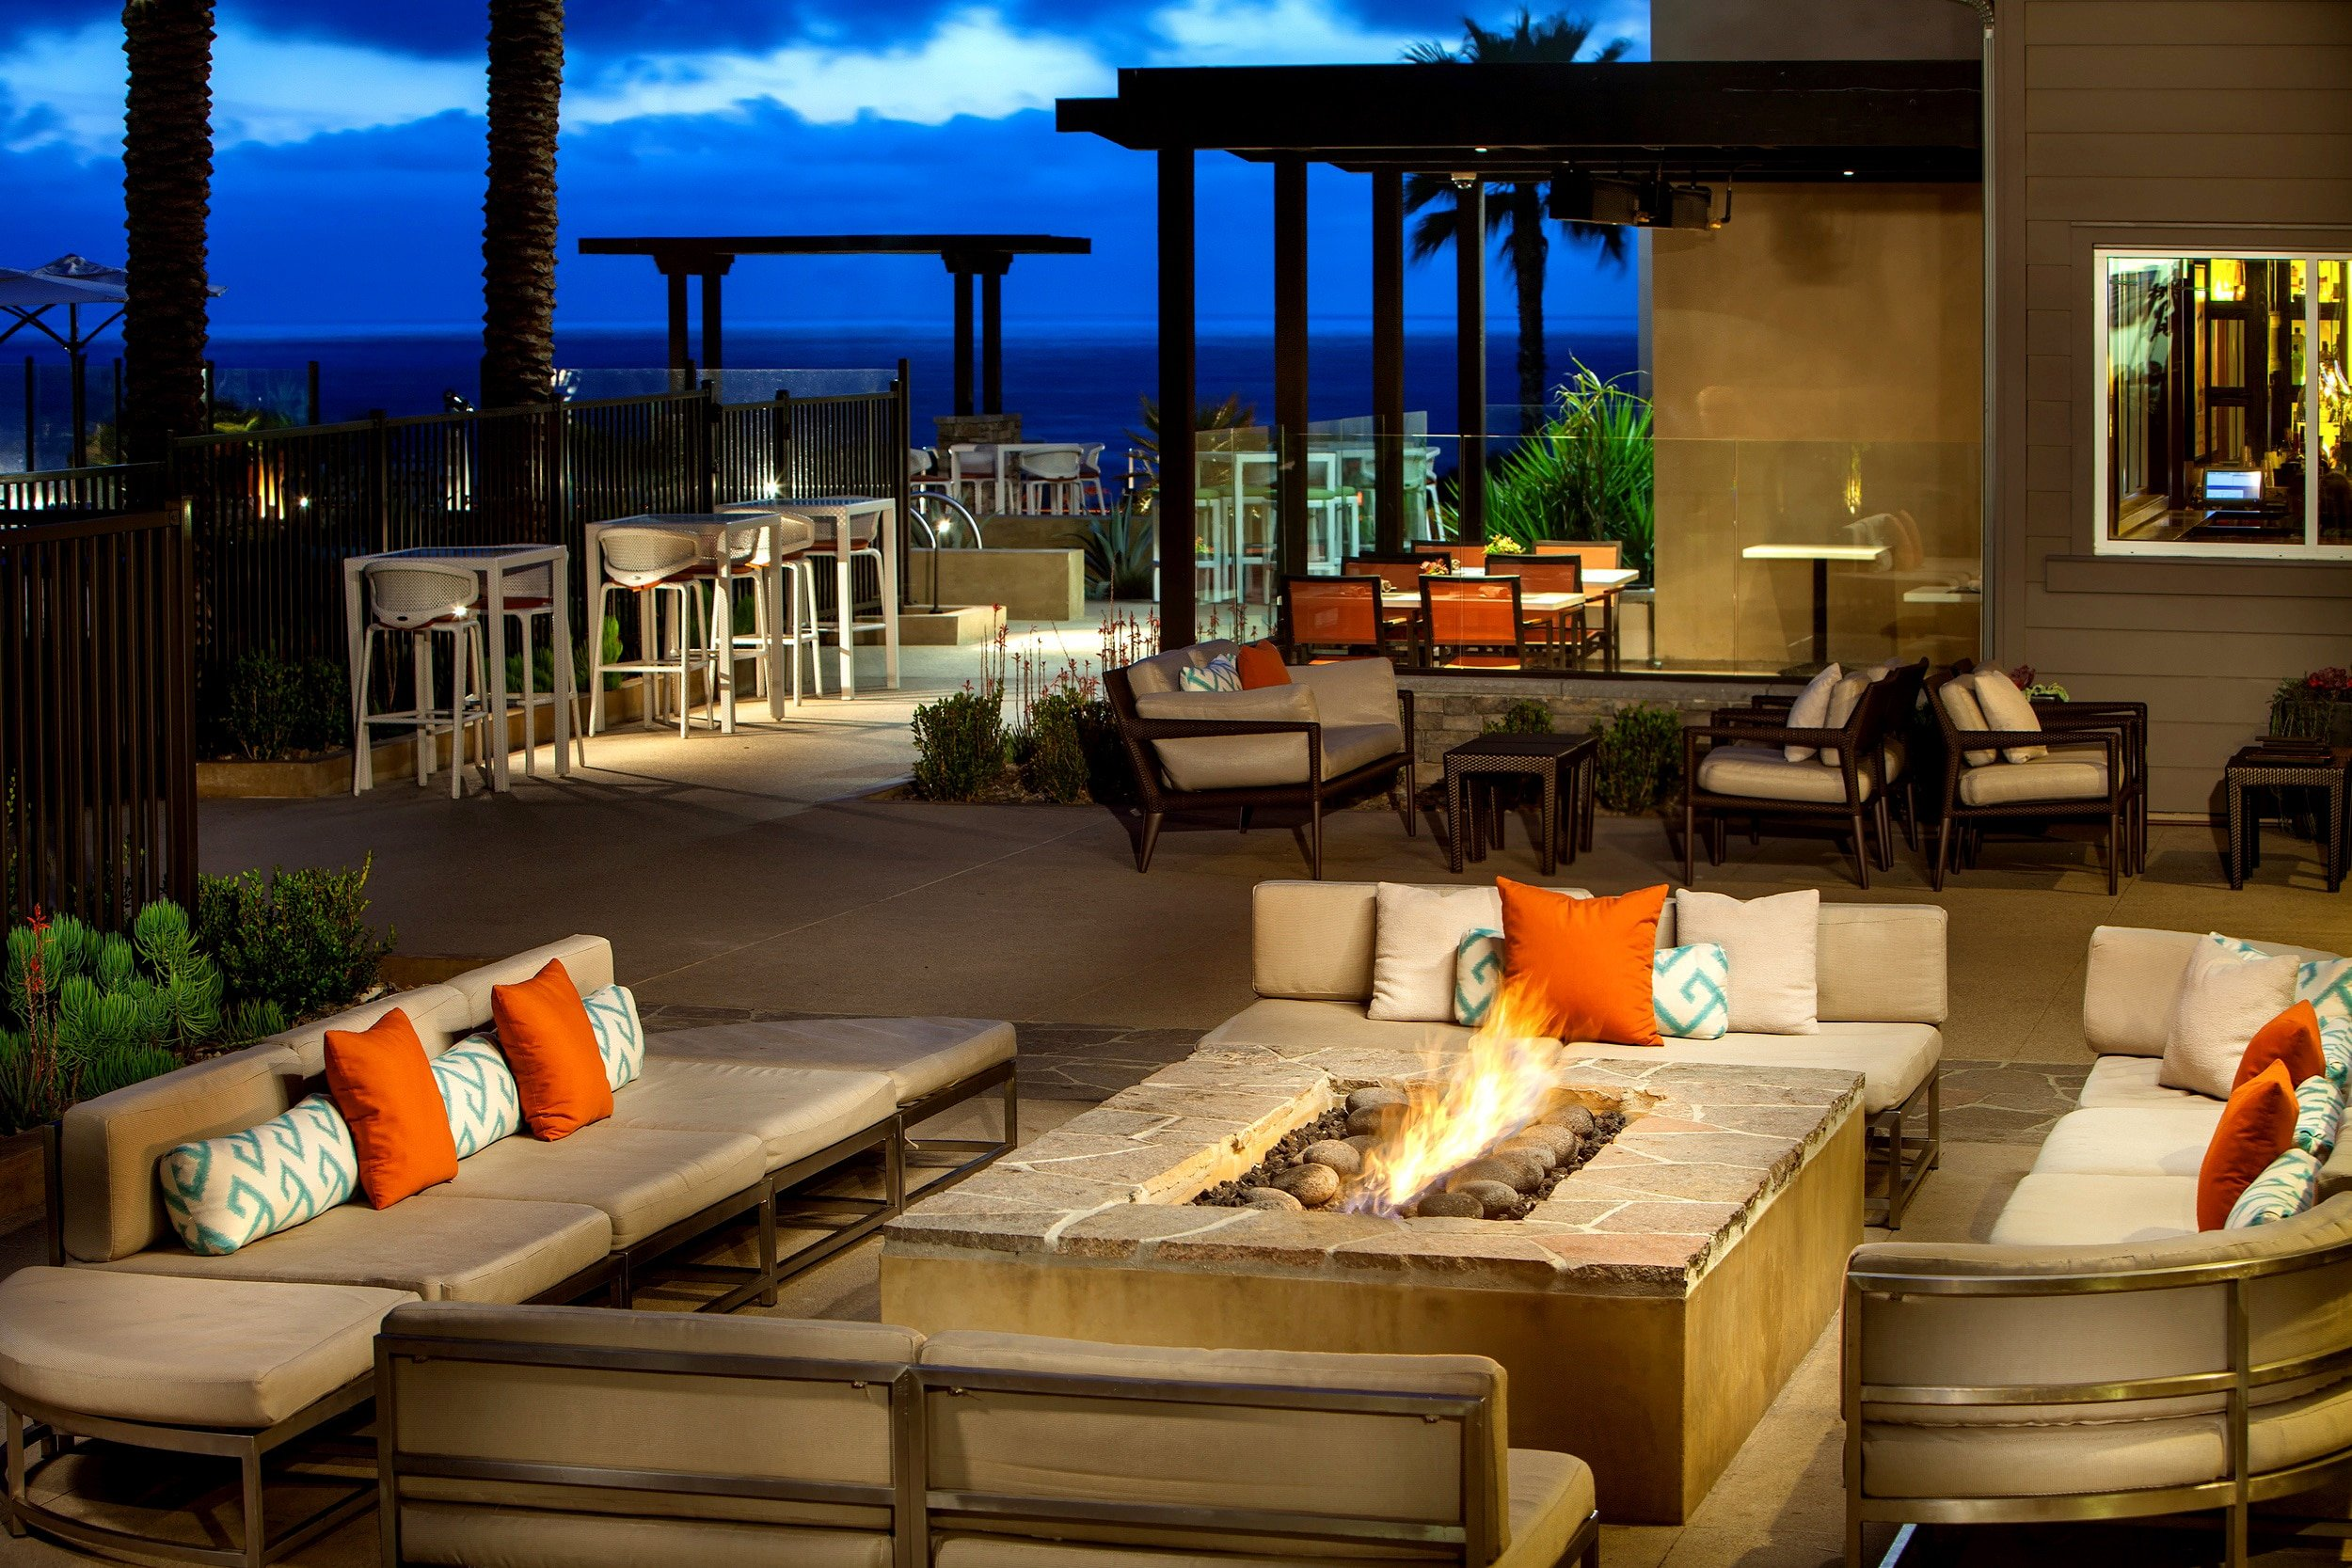 cape rey carlsbad outdoor patio